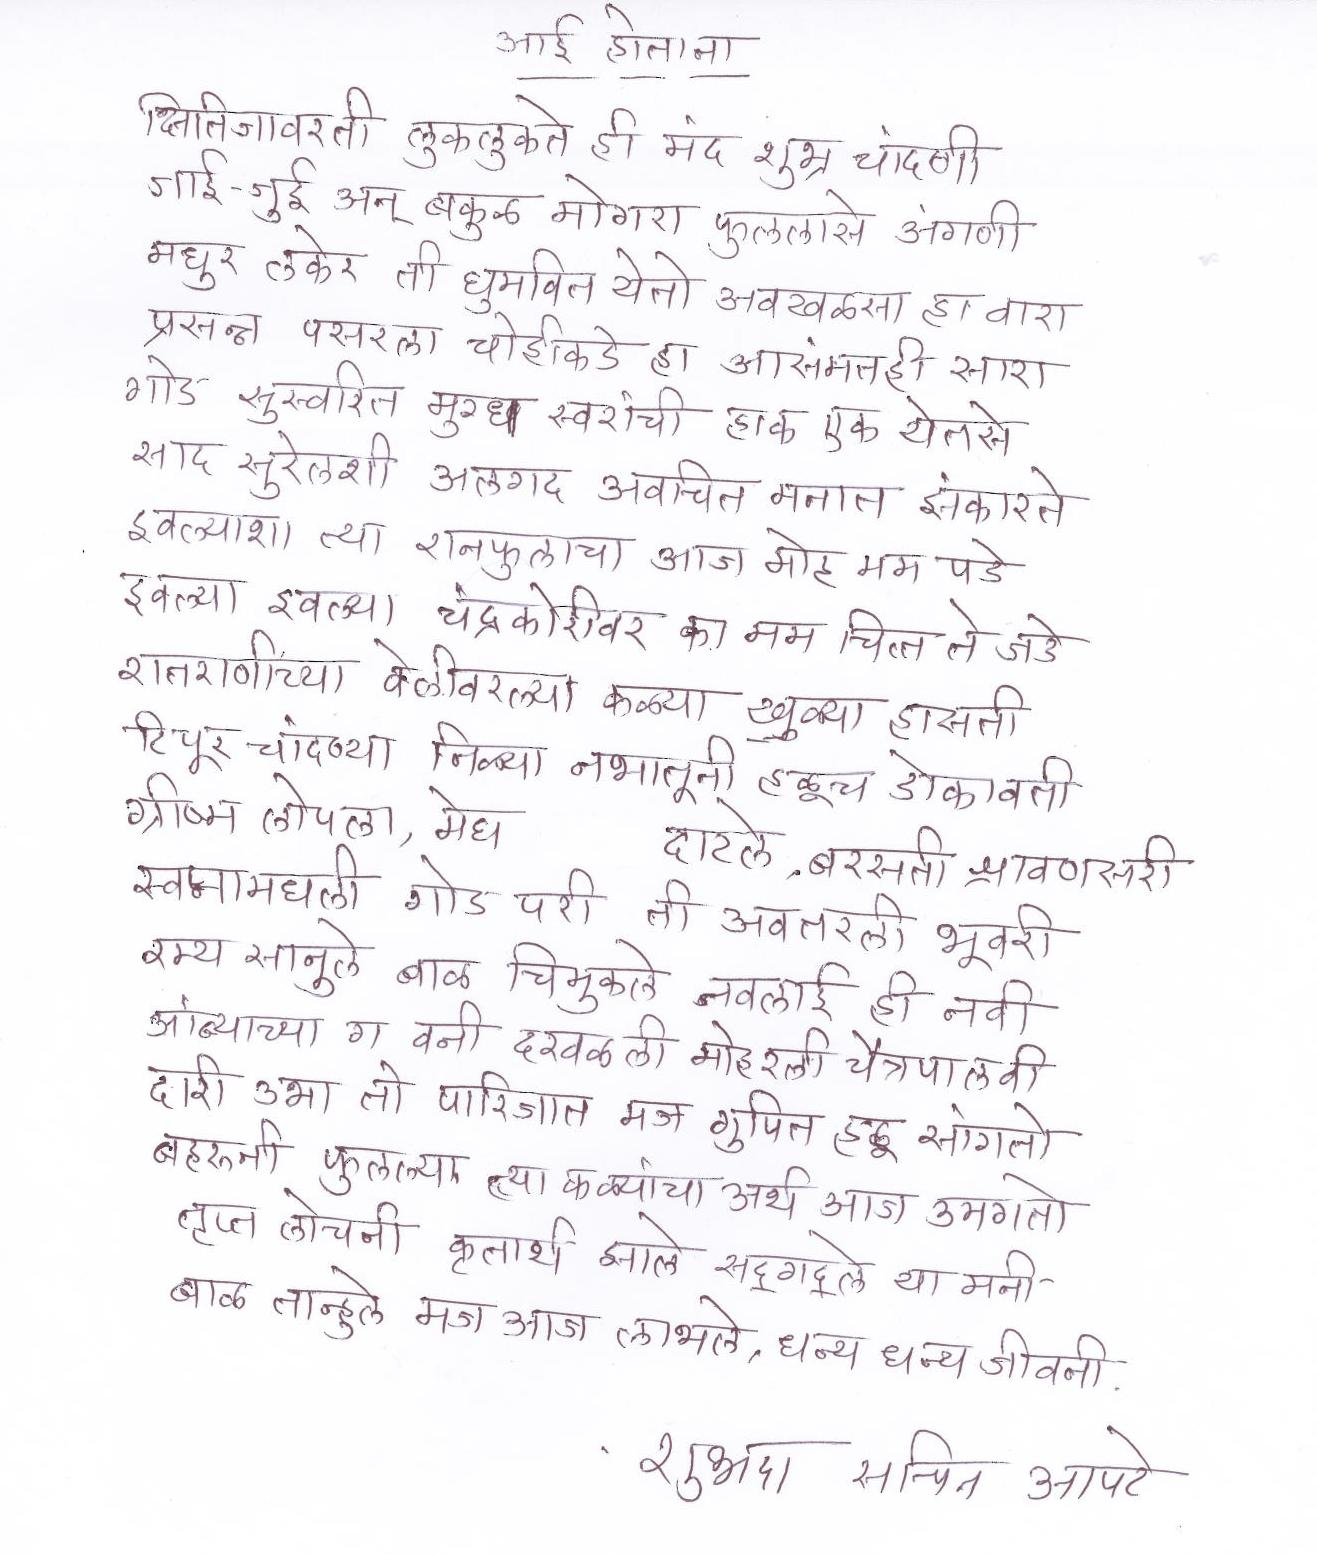 safety essay in gujarati language His father viswanath dutta was a learned safety essay in gujarati language phaliyan — wnymuslimsorgphaliyan essay in language gujarati bar exam essay answers pdf short essay on swami vivekananda in sanskrit argumentative essay on my village essay in gujarati language — akyildizavtressay on swami vivekananda in gujarati lined paper for.